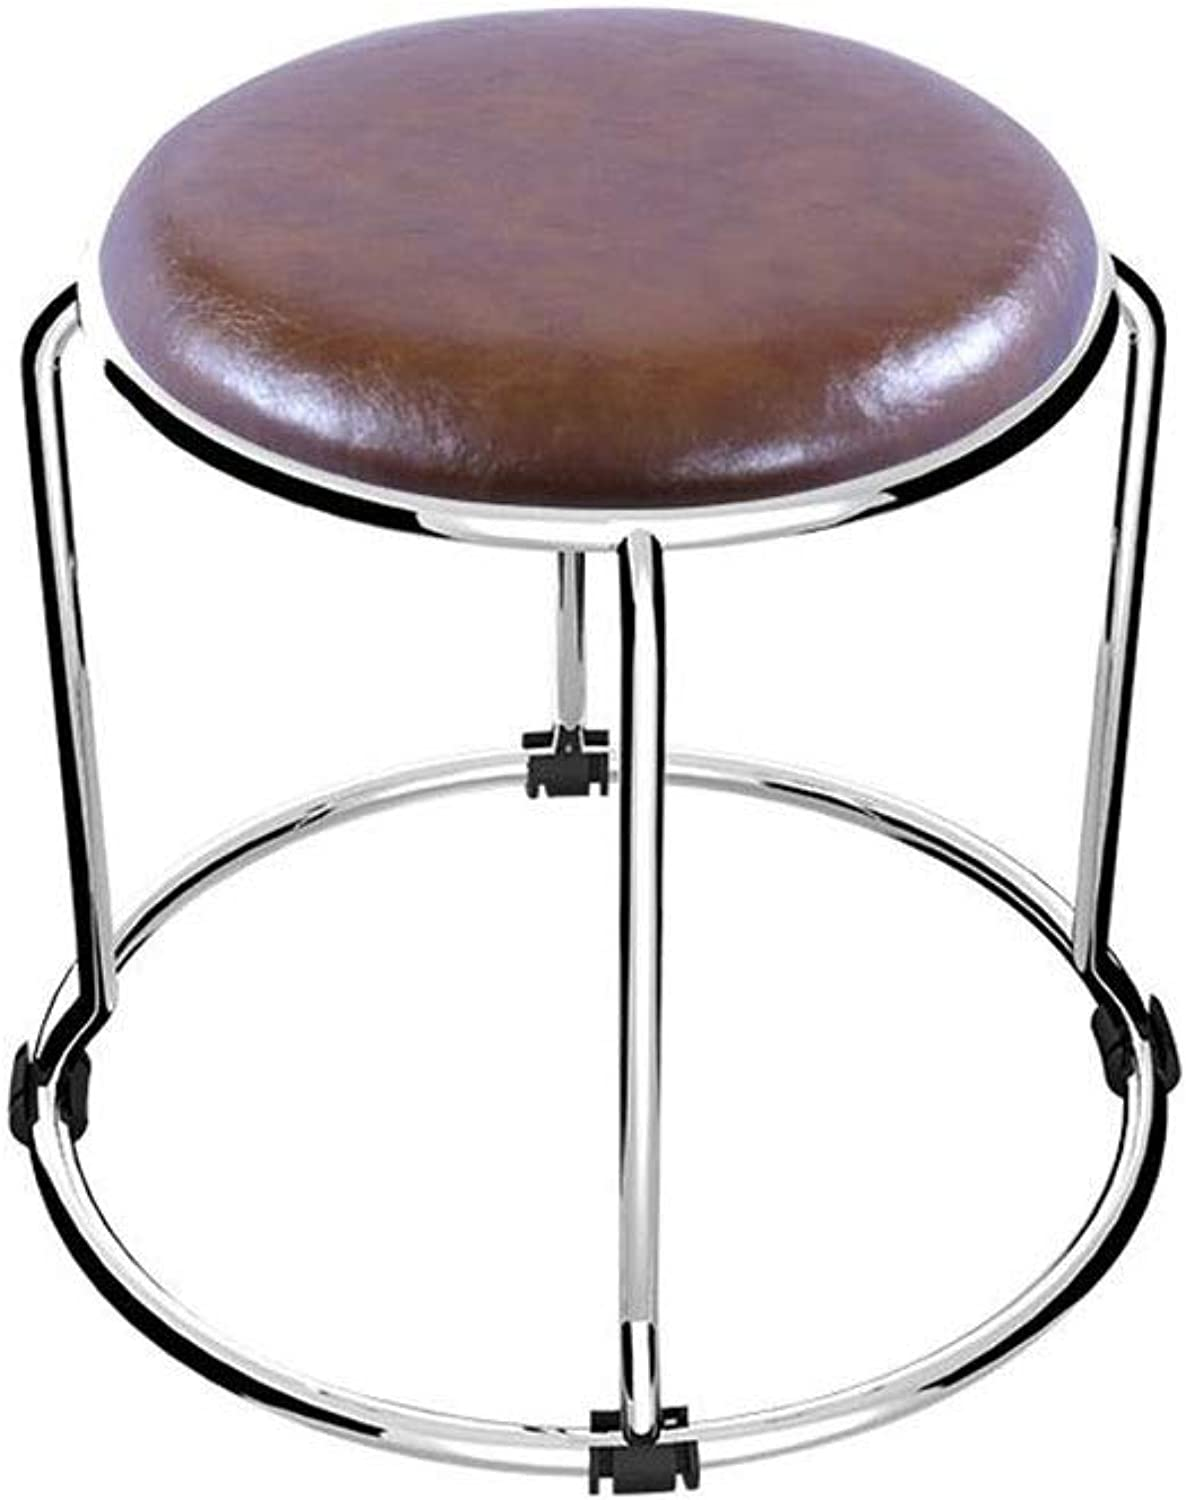 YCSD Stool Stainless Steel Stackable Small Round Stool, Home Art Stool PU Soft Footstool Lightweight furniture (color   BROWN)